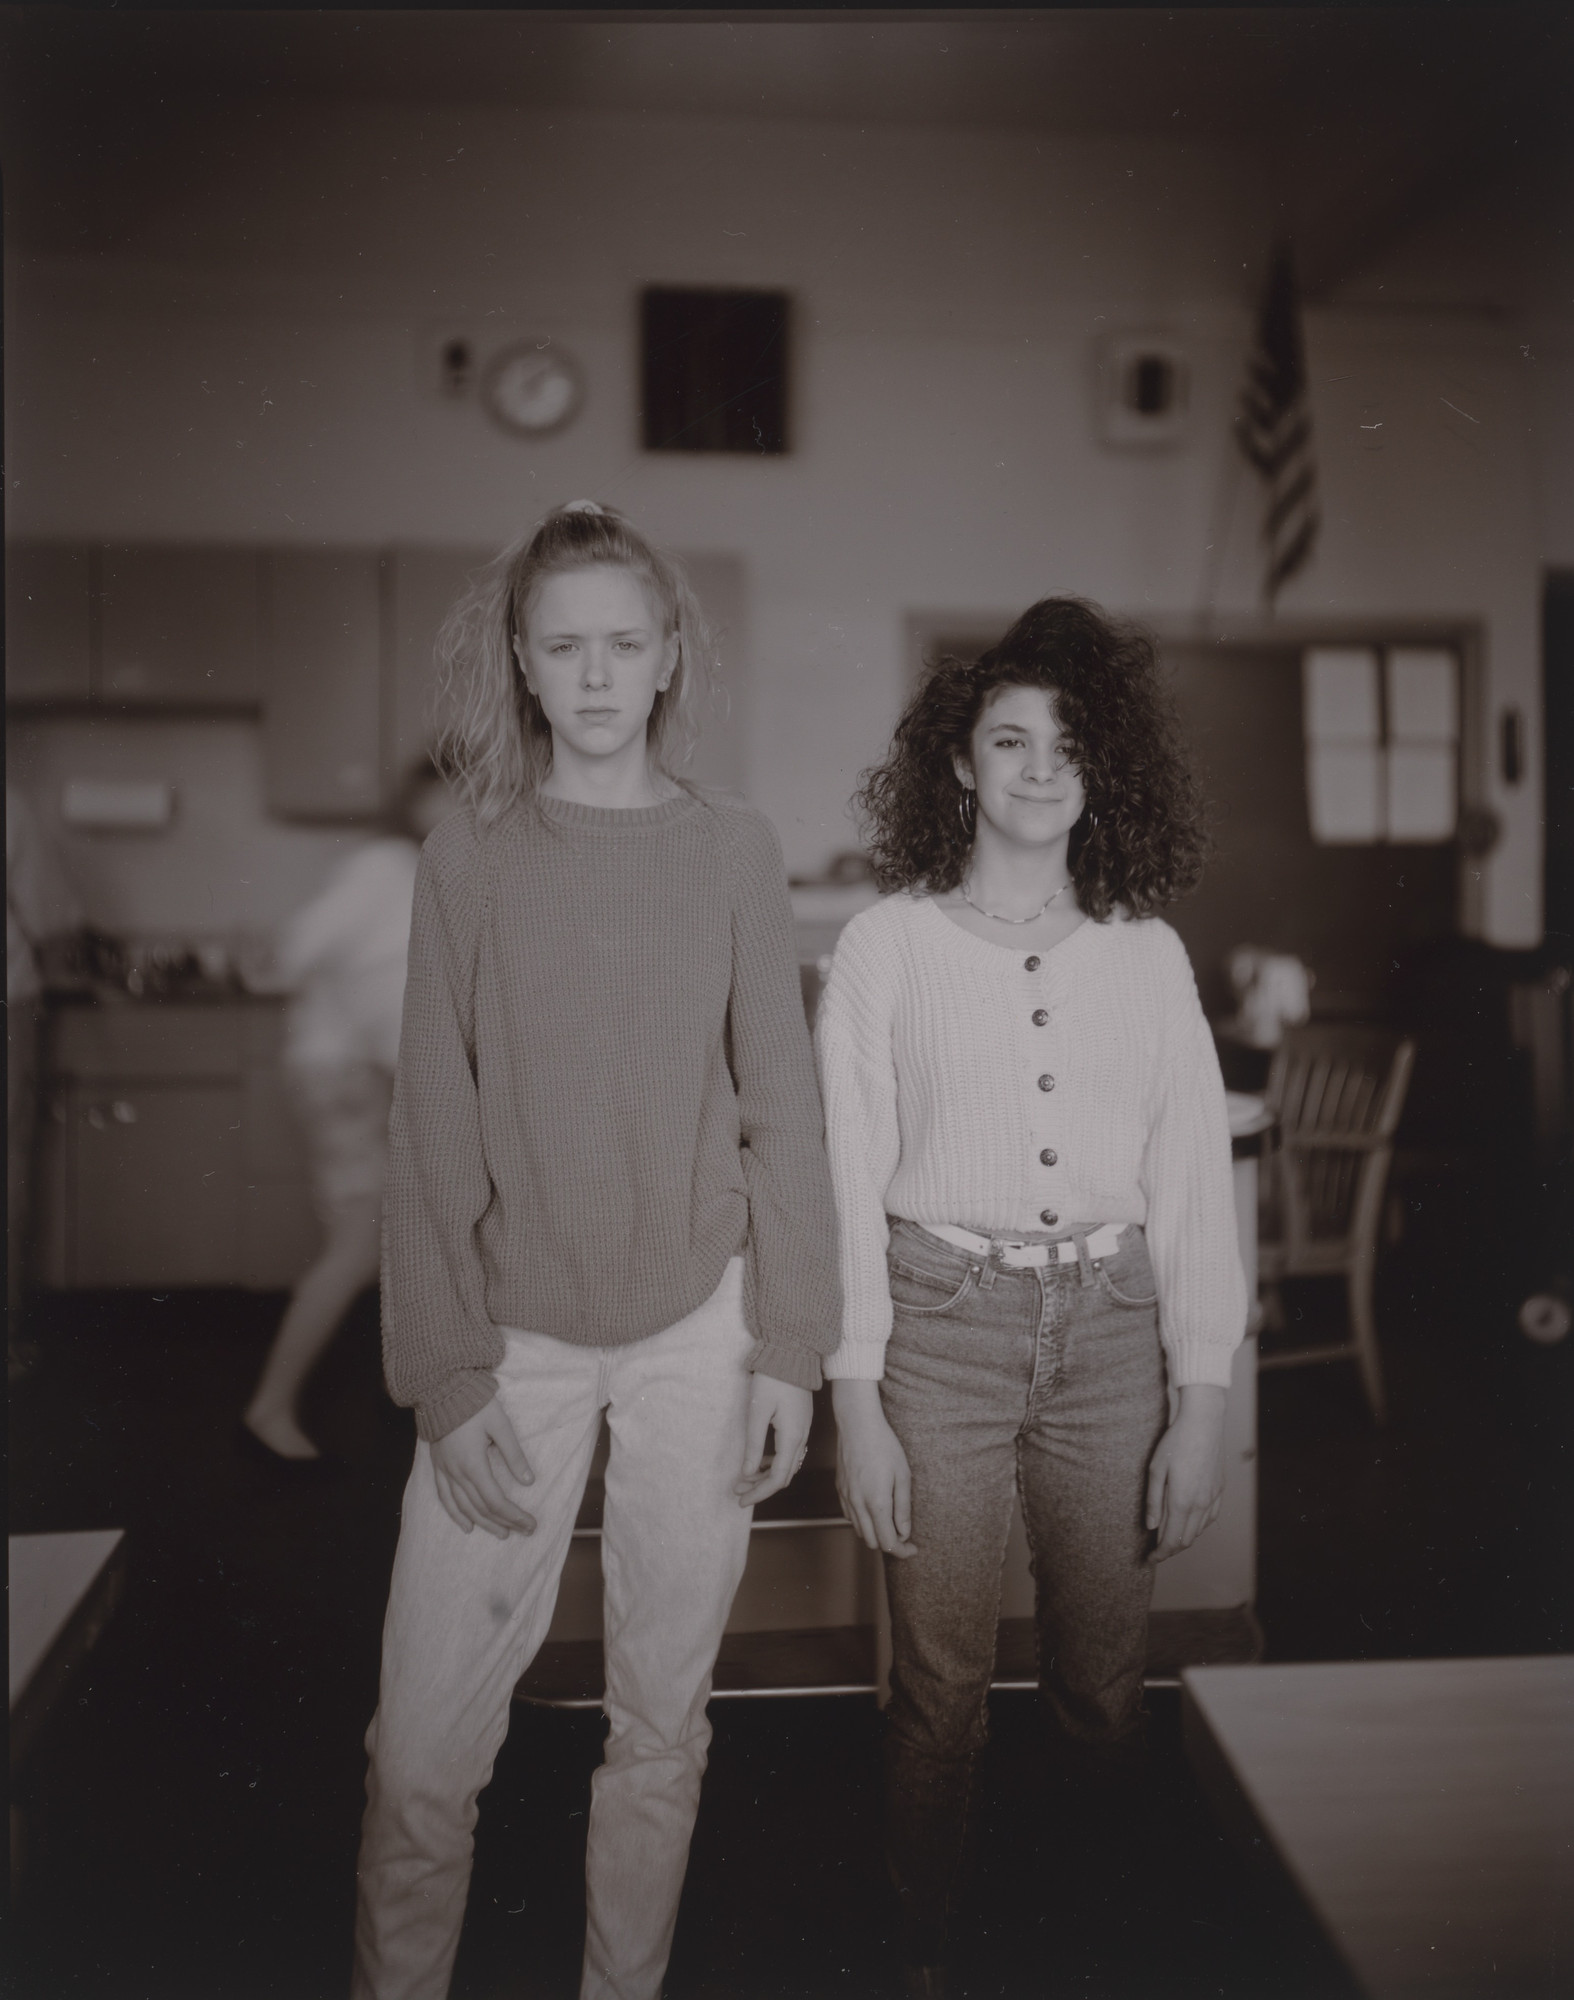 Judith Joy Ross. Danielle Miller and Maria Koslop in Home Economics, H.F. Grebey Junior High School, Hazleton, Pennslyania. 1992